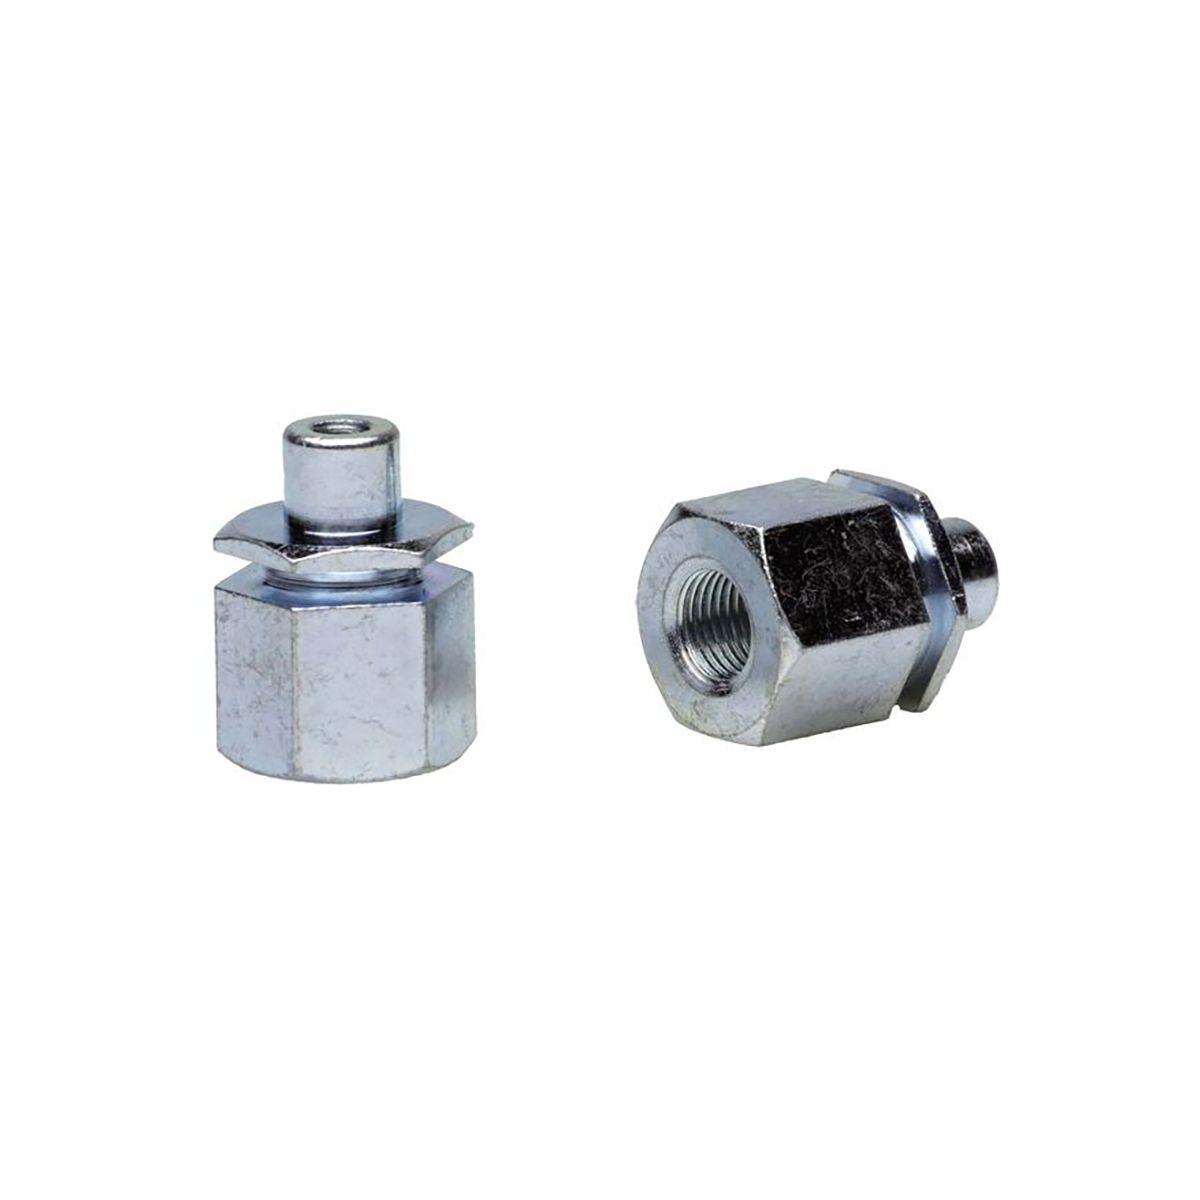 FollowMe Adapter for Solid Axle 3/8x26g | bike_trailers_component